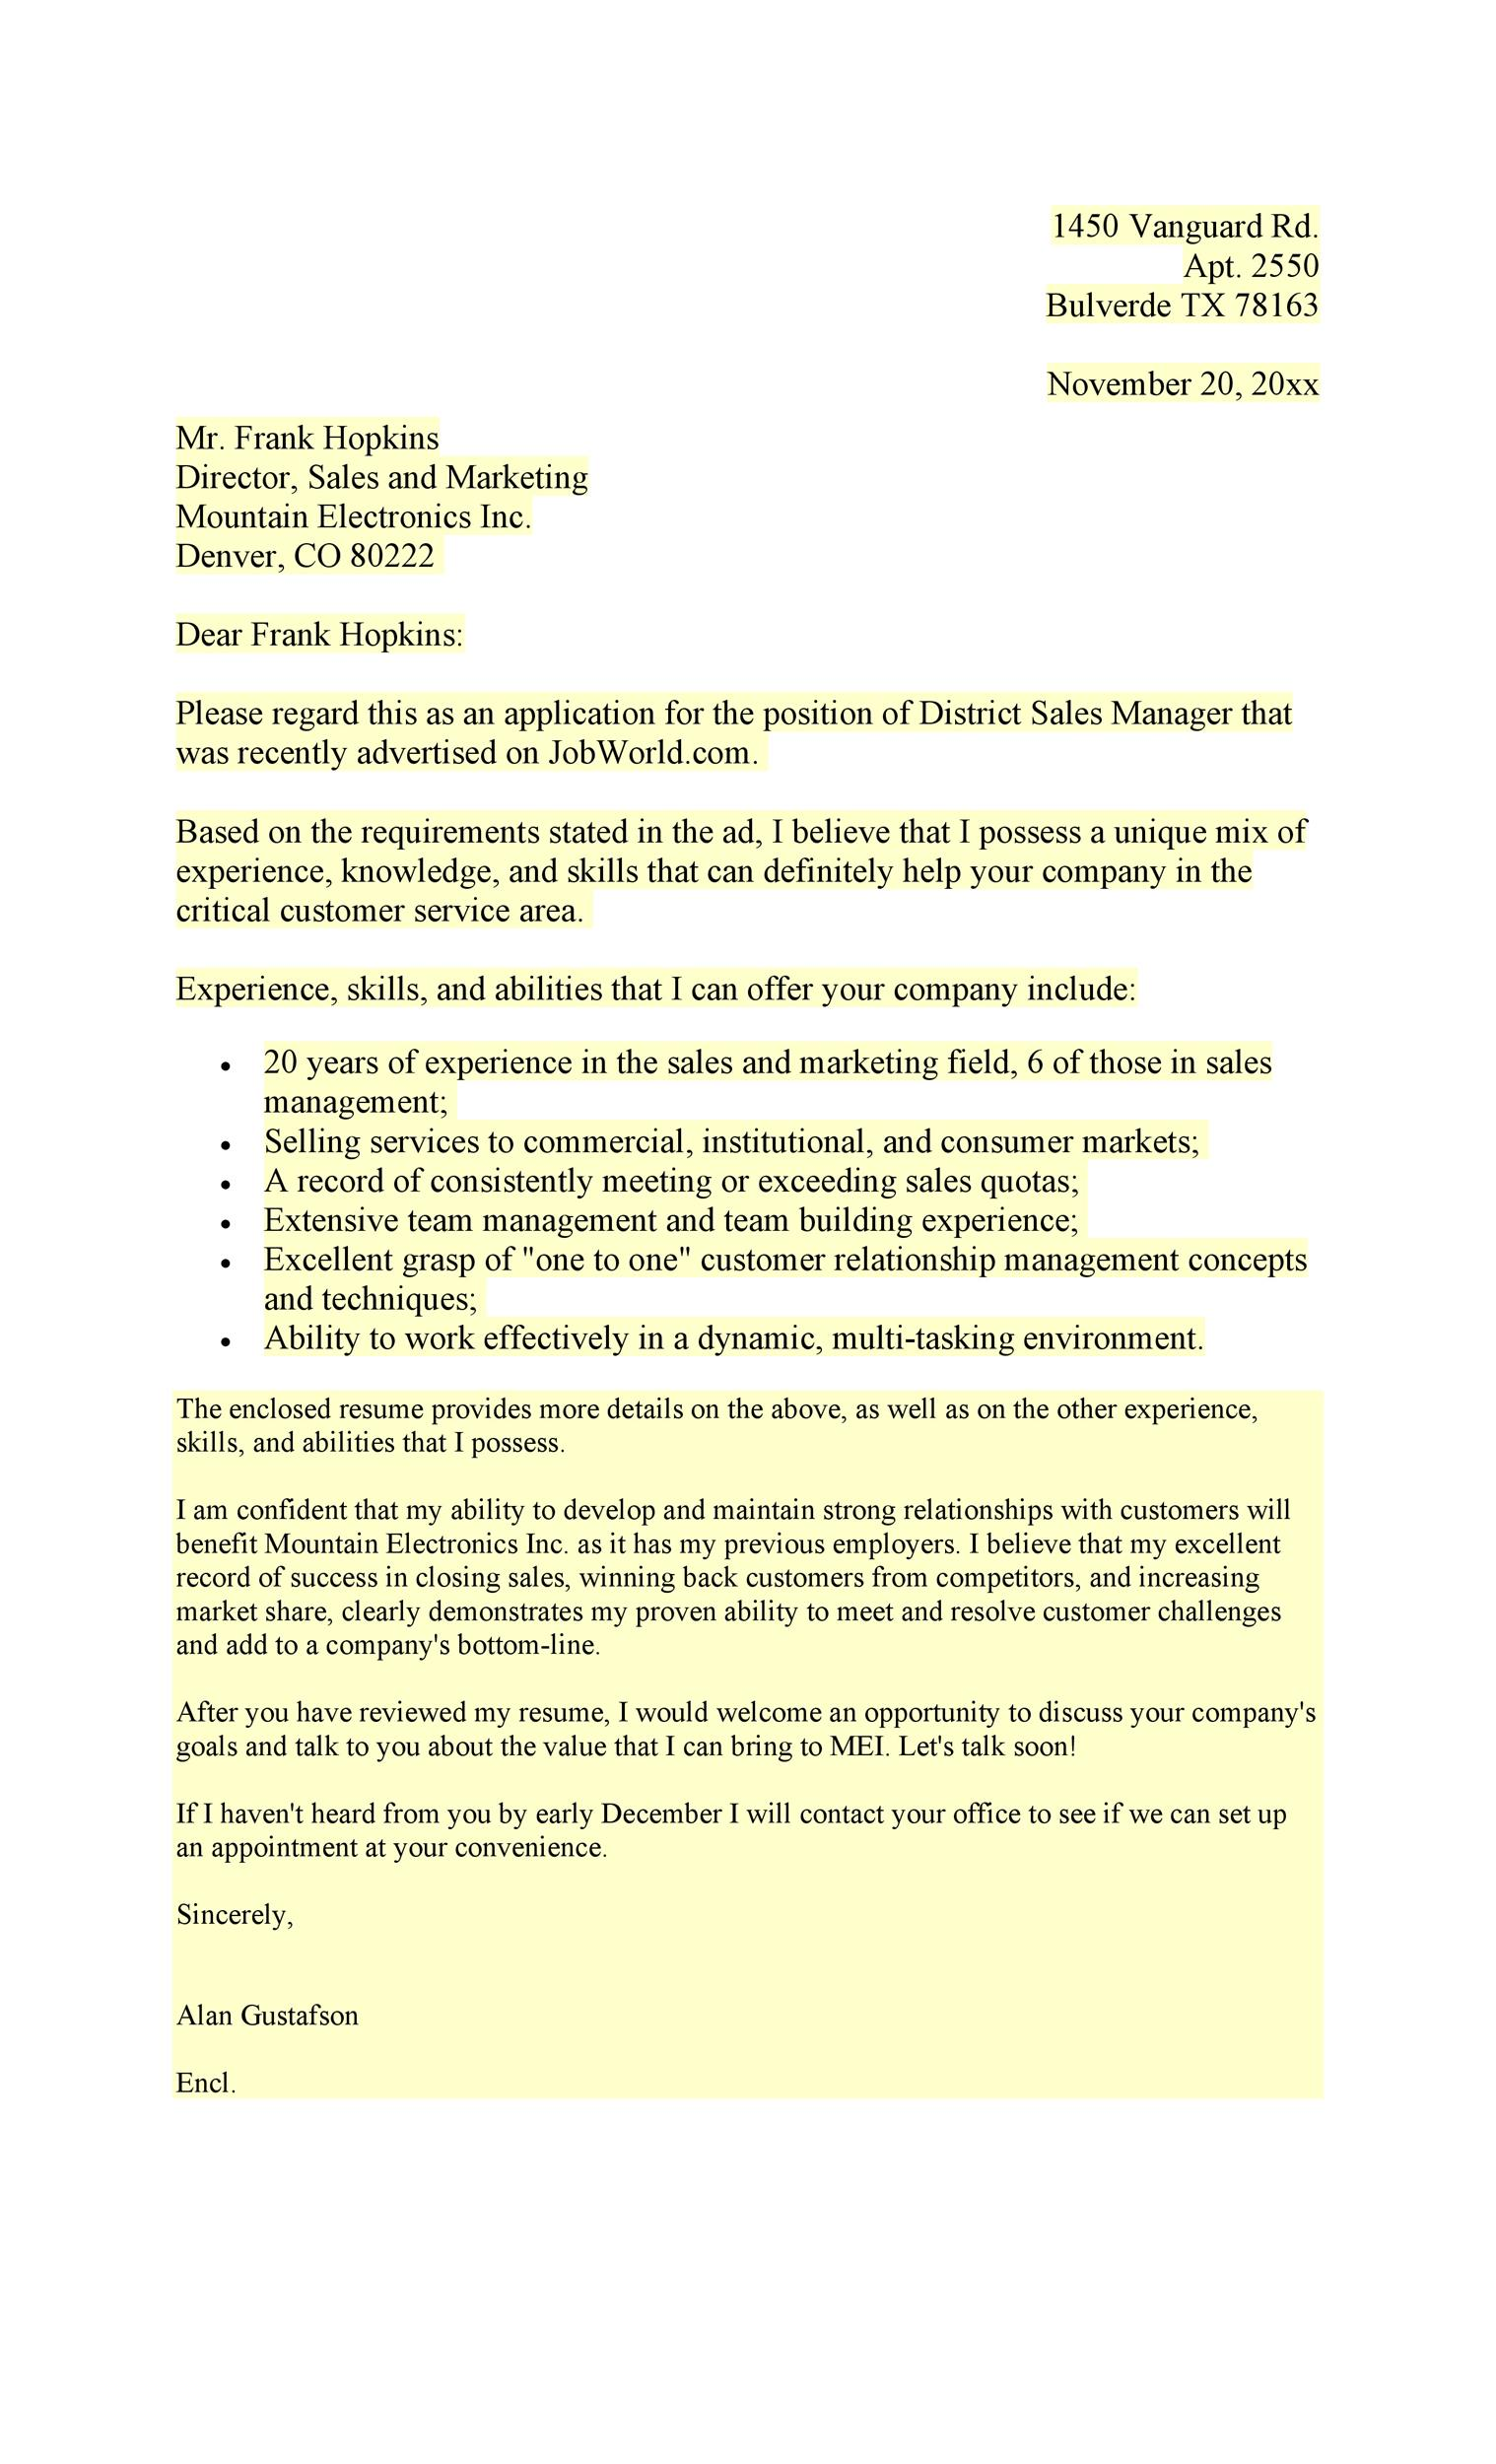 Free letter of application 47